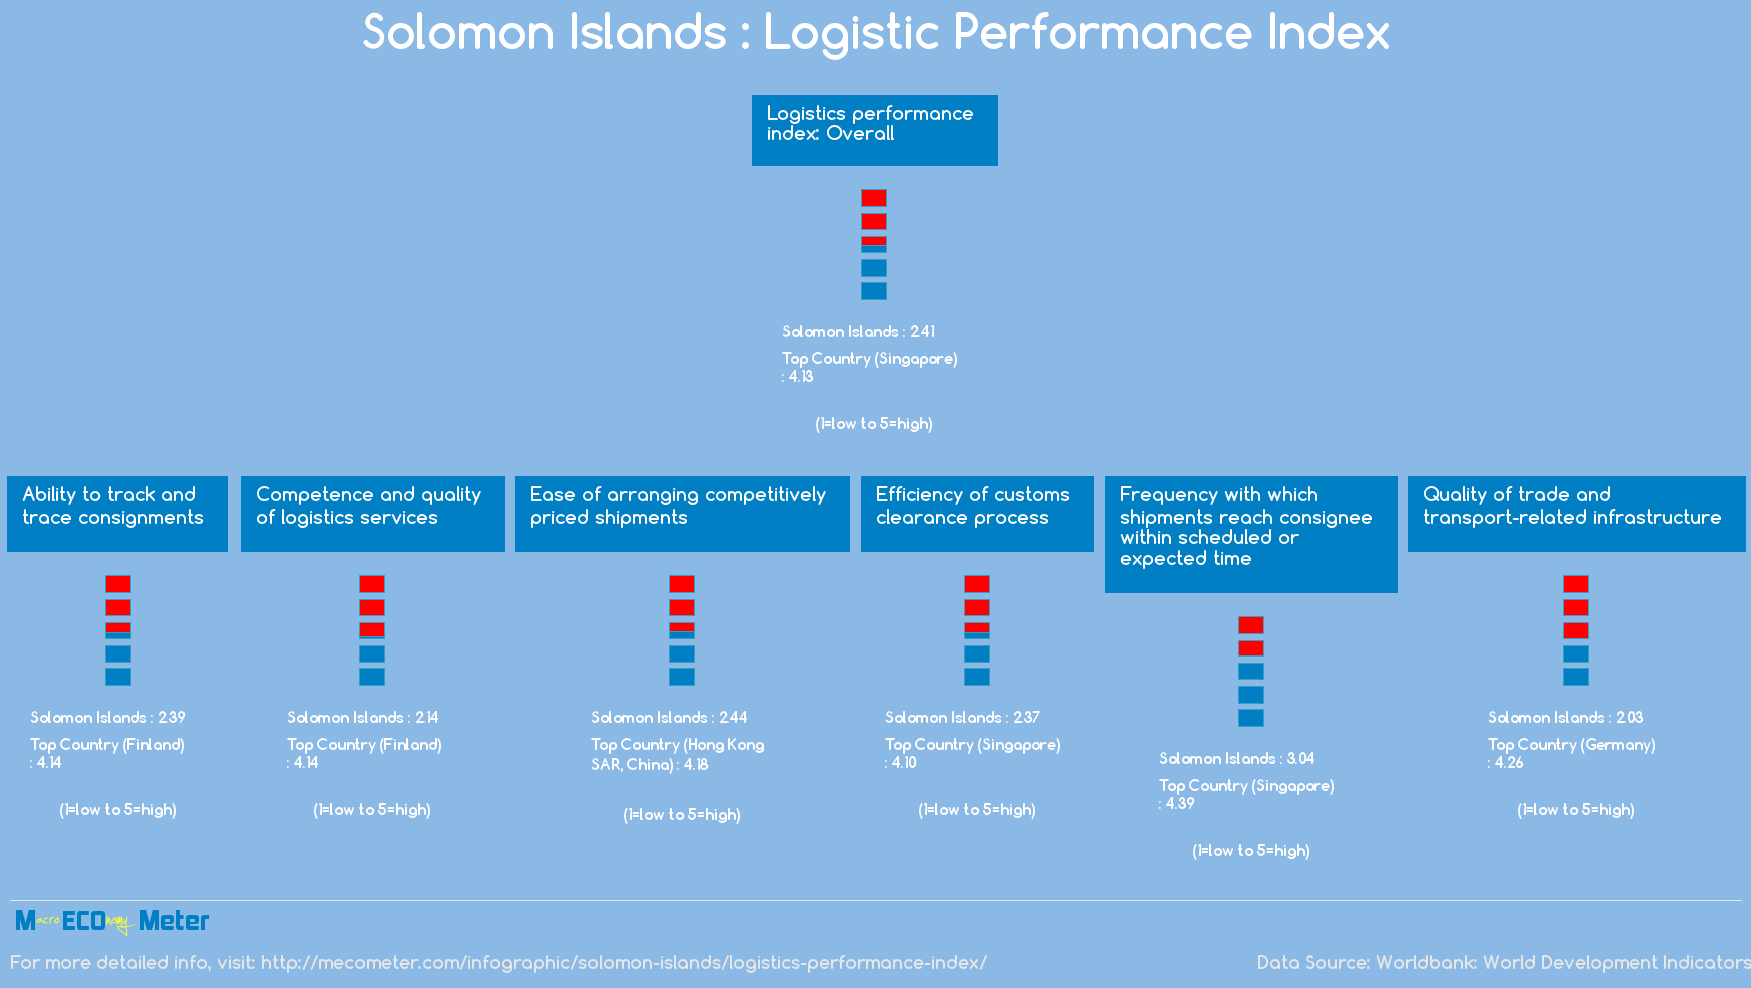 Solomon Islands : Logistic Performance Index